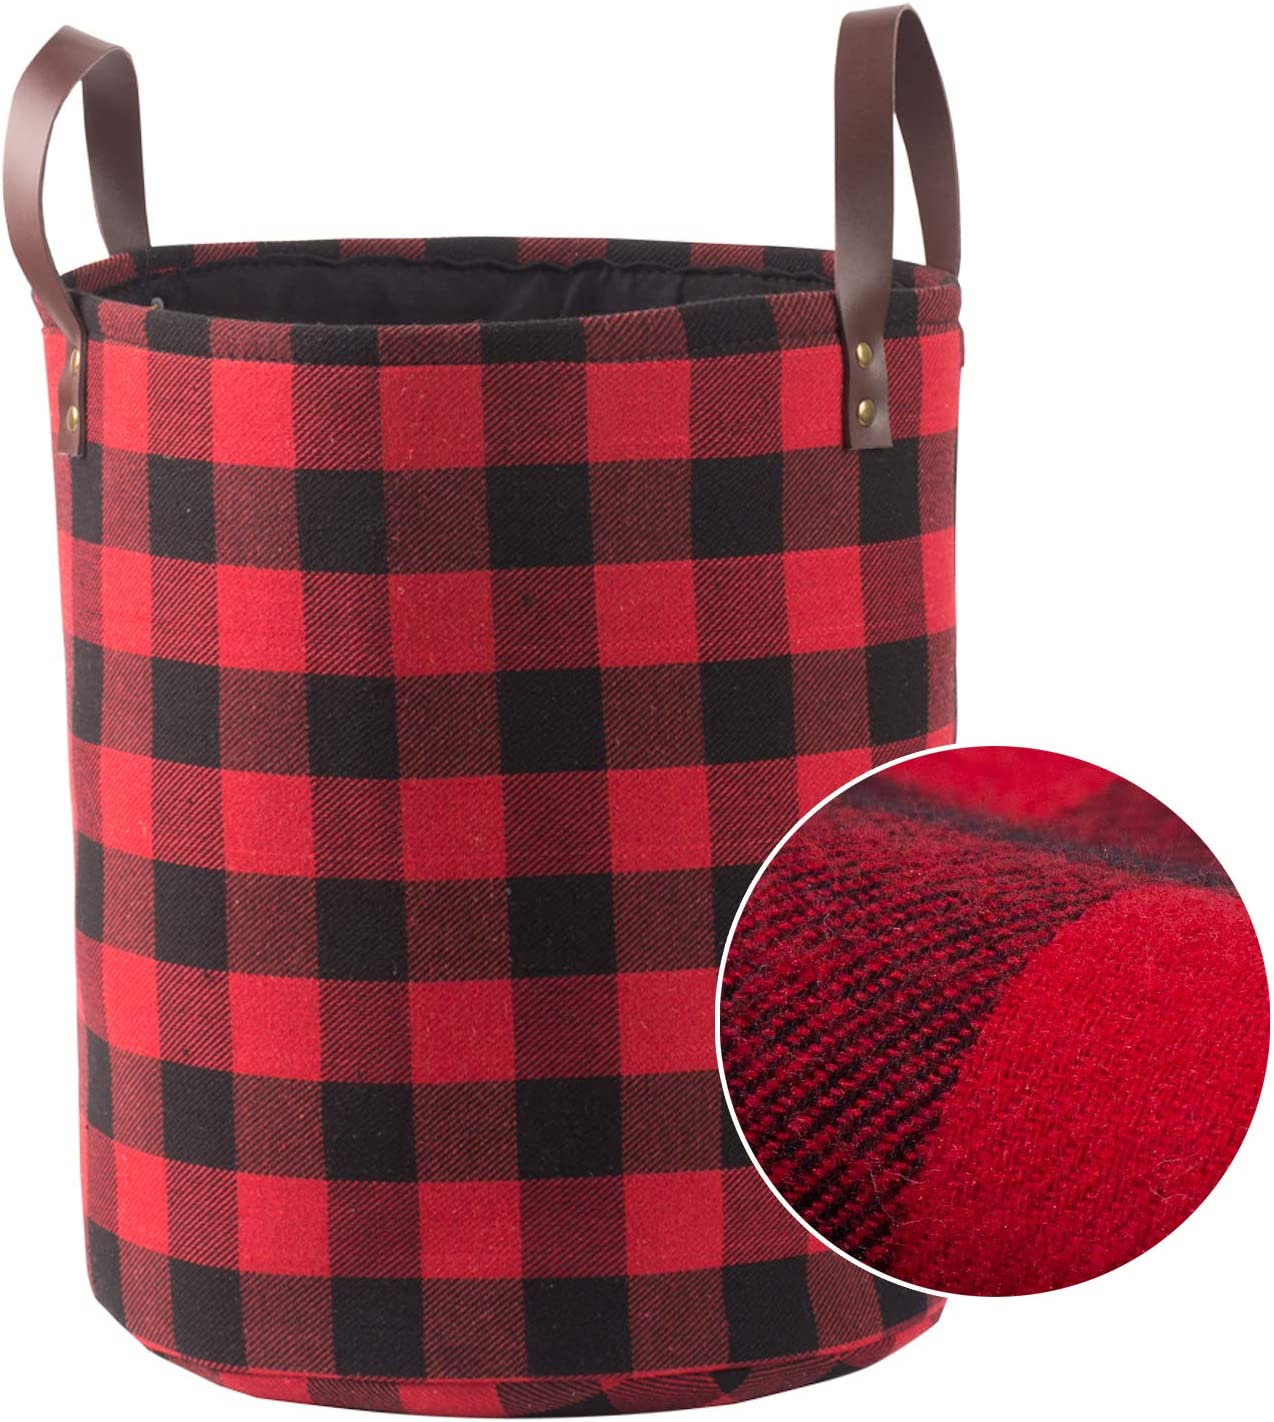 "Collapsible Decorative Storage Basket or Bin with Leather Handles, Woolen Fabric Foldable Tote Bags, Home Organizer Solution for Bedroom, Closet, Toys, Laundry (Medium Round-11"" X 13""), Red Black Grid"